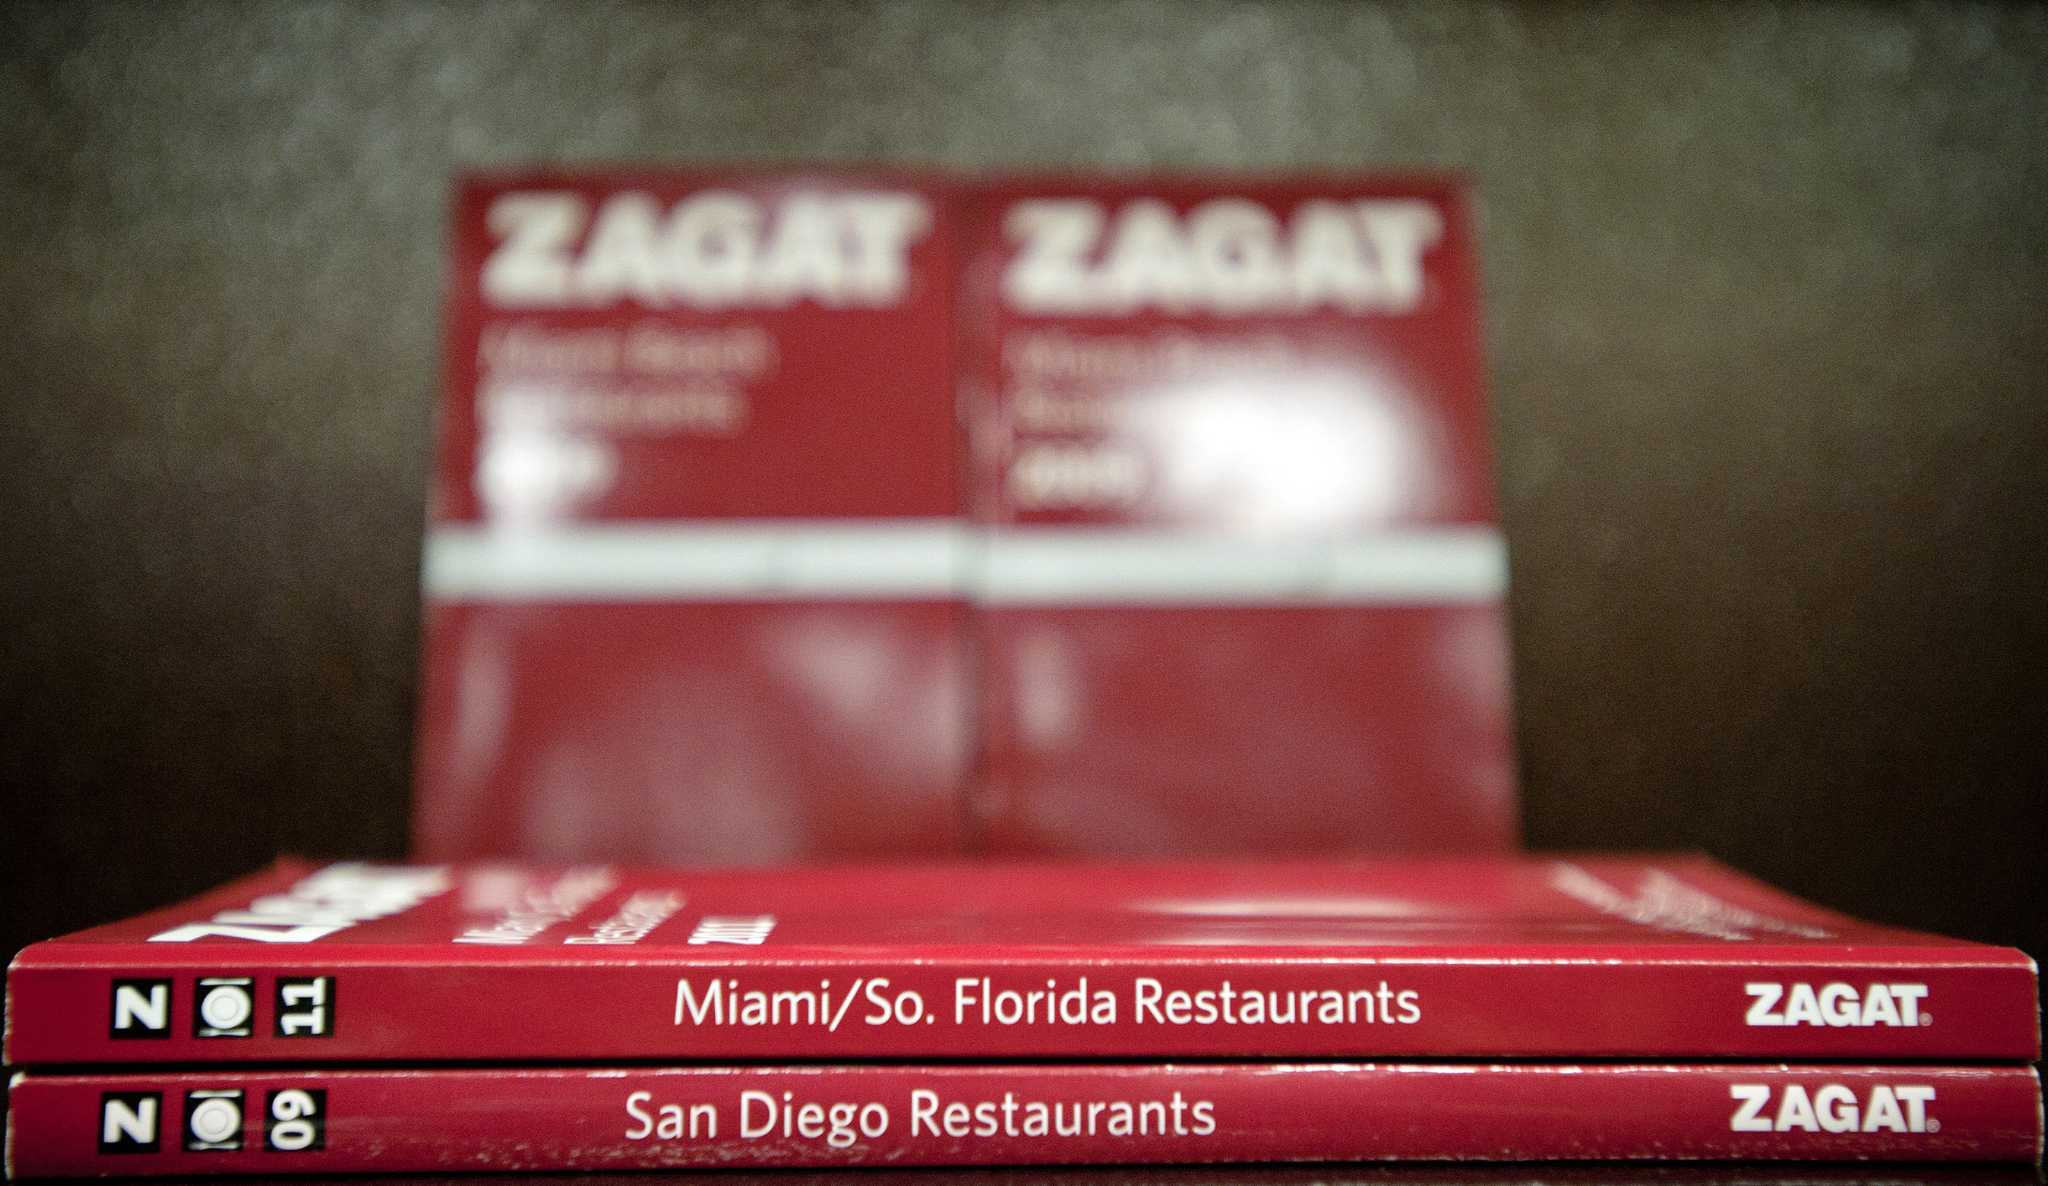 Diverting How Google Almost Destroyed Zagat Restaurant Guide Sfgate Zagat Los Angeles Sushi Zagat Los Angeles Japanese nice food Zagat Los Angeles